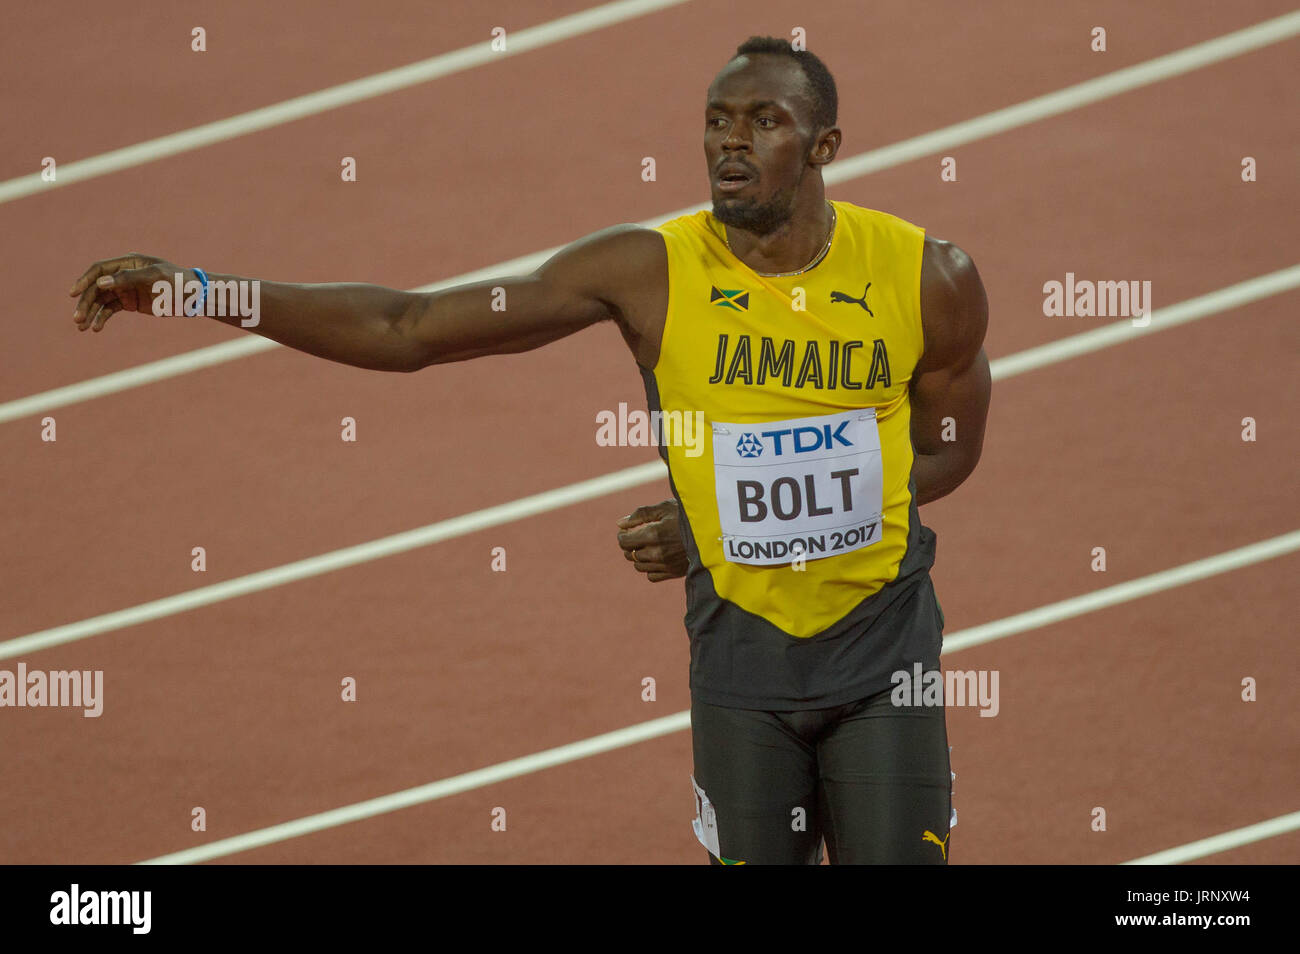 London, UK. 5th August, 2017. King Usain Bolt in the 6th 100m series at the IAAF World Championships in 2017, Queen Elizabeth Olympic Park, Stratford, London, UK Credit: Laurent Lairys/Agence Locevaphotos/Alamy Live News Stock Photo